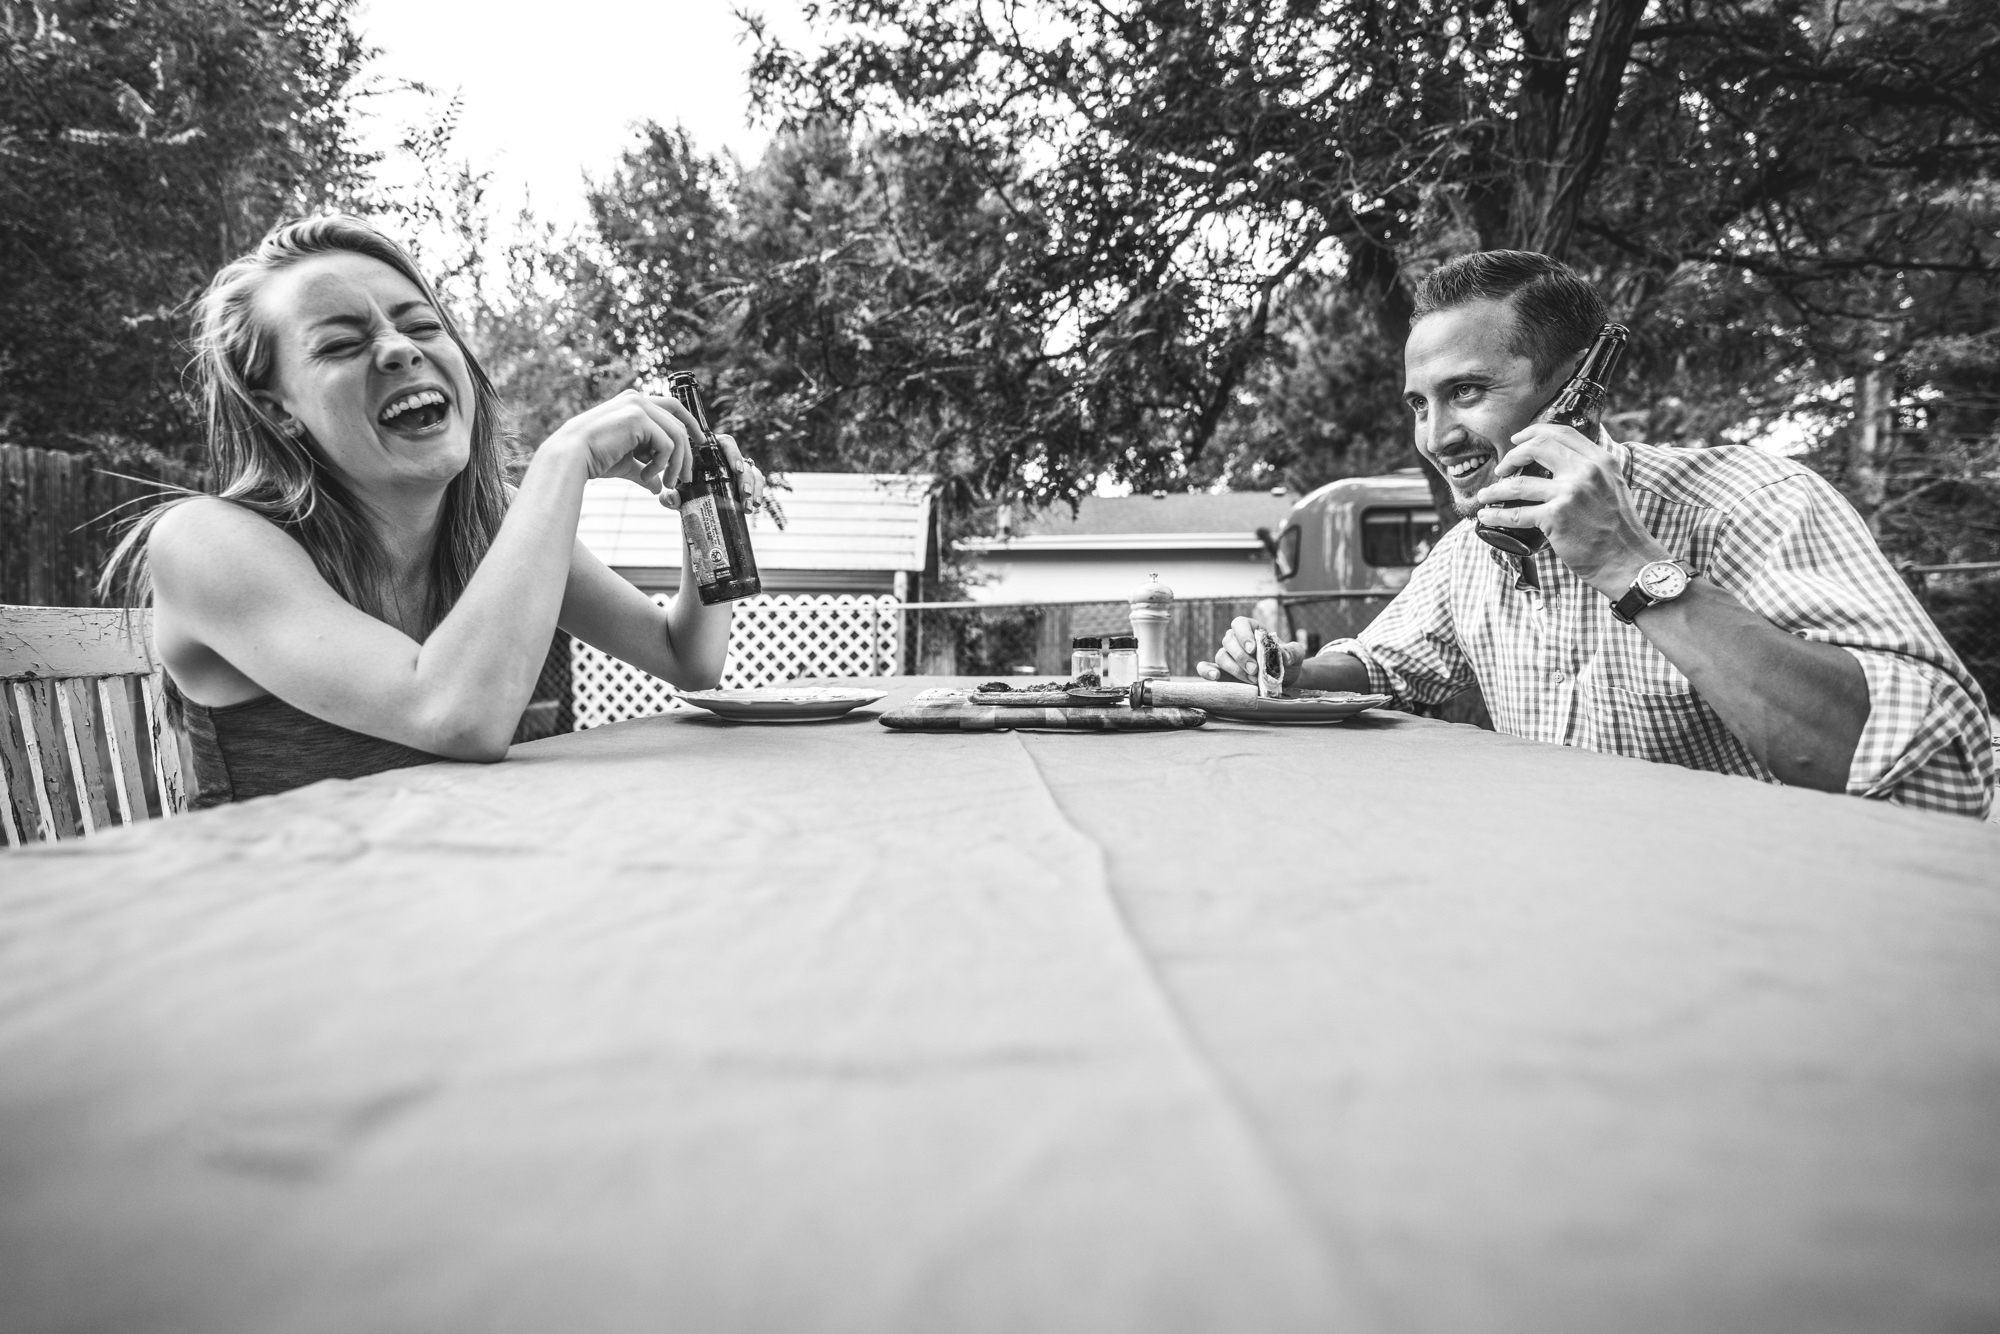 Man and woman at an outside table laughing